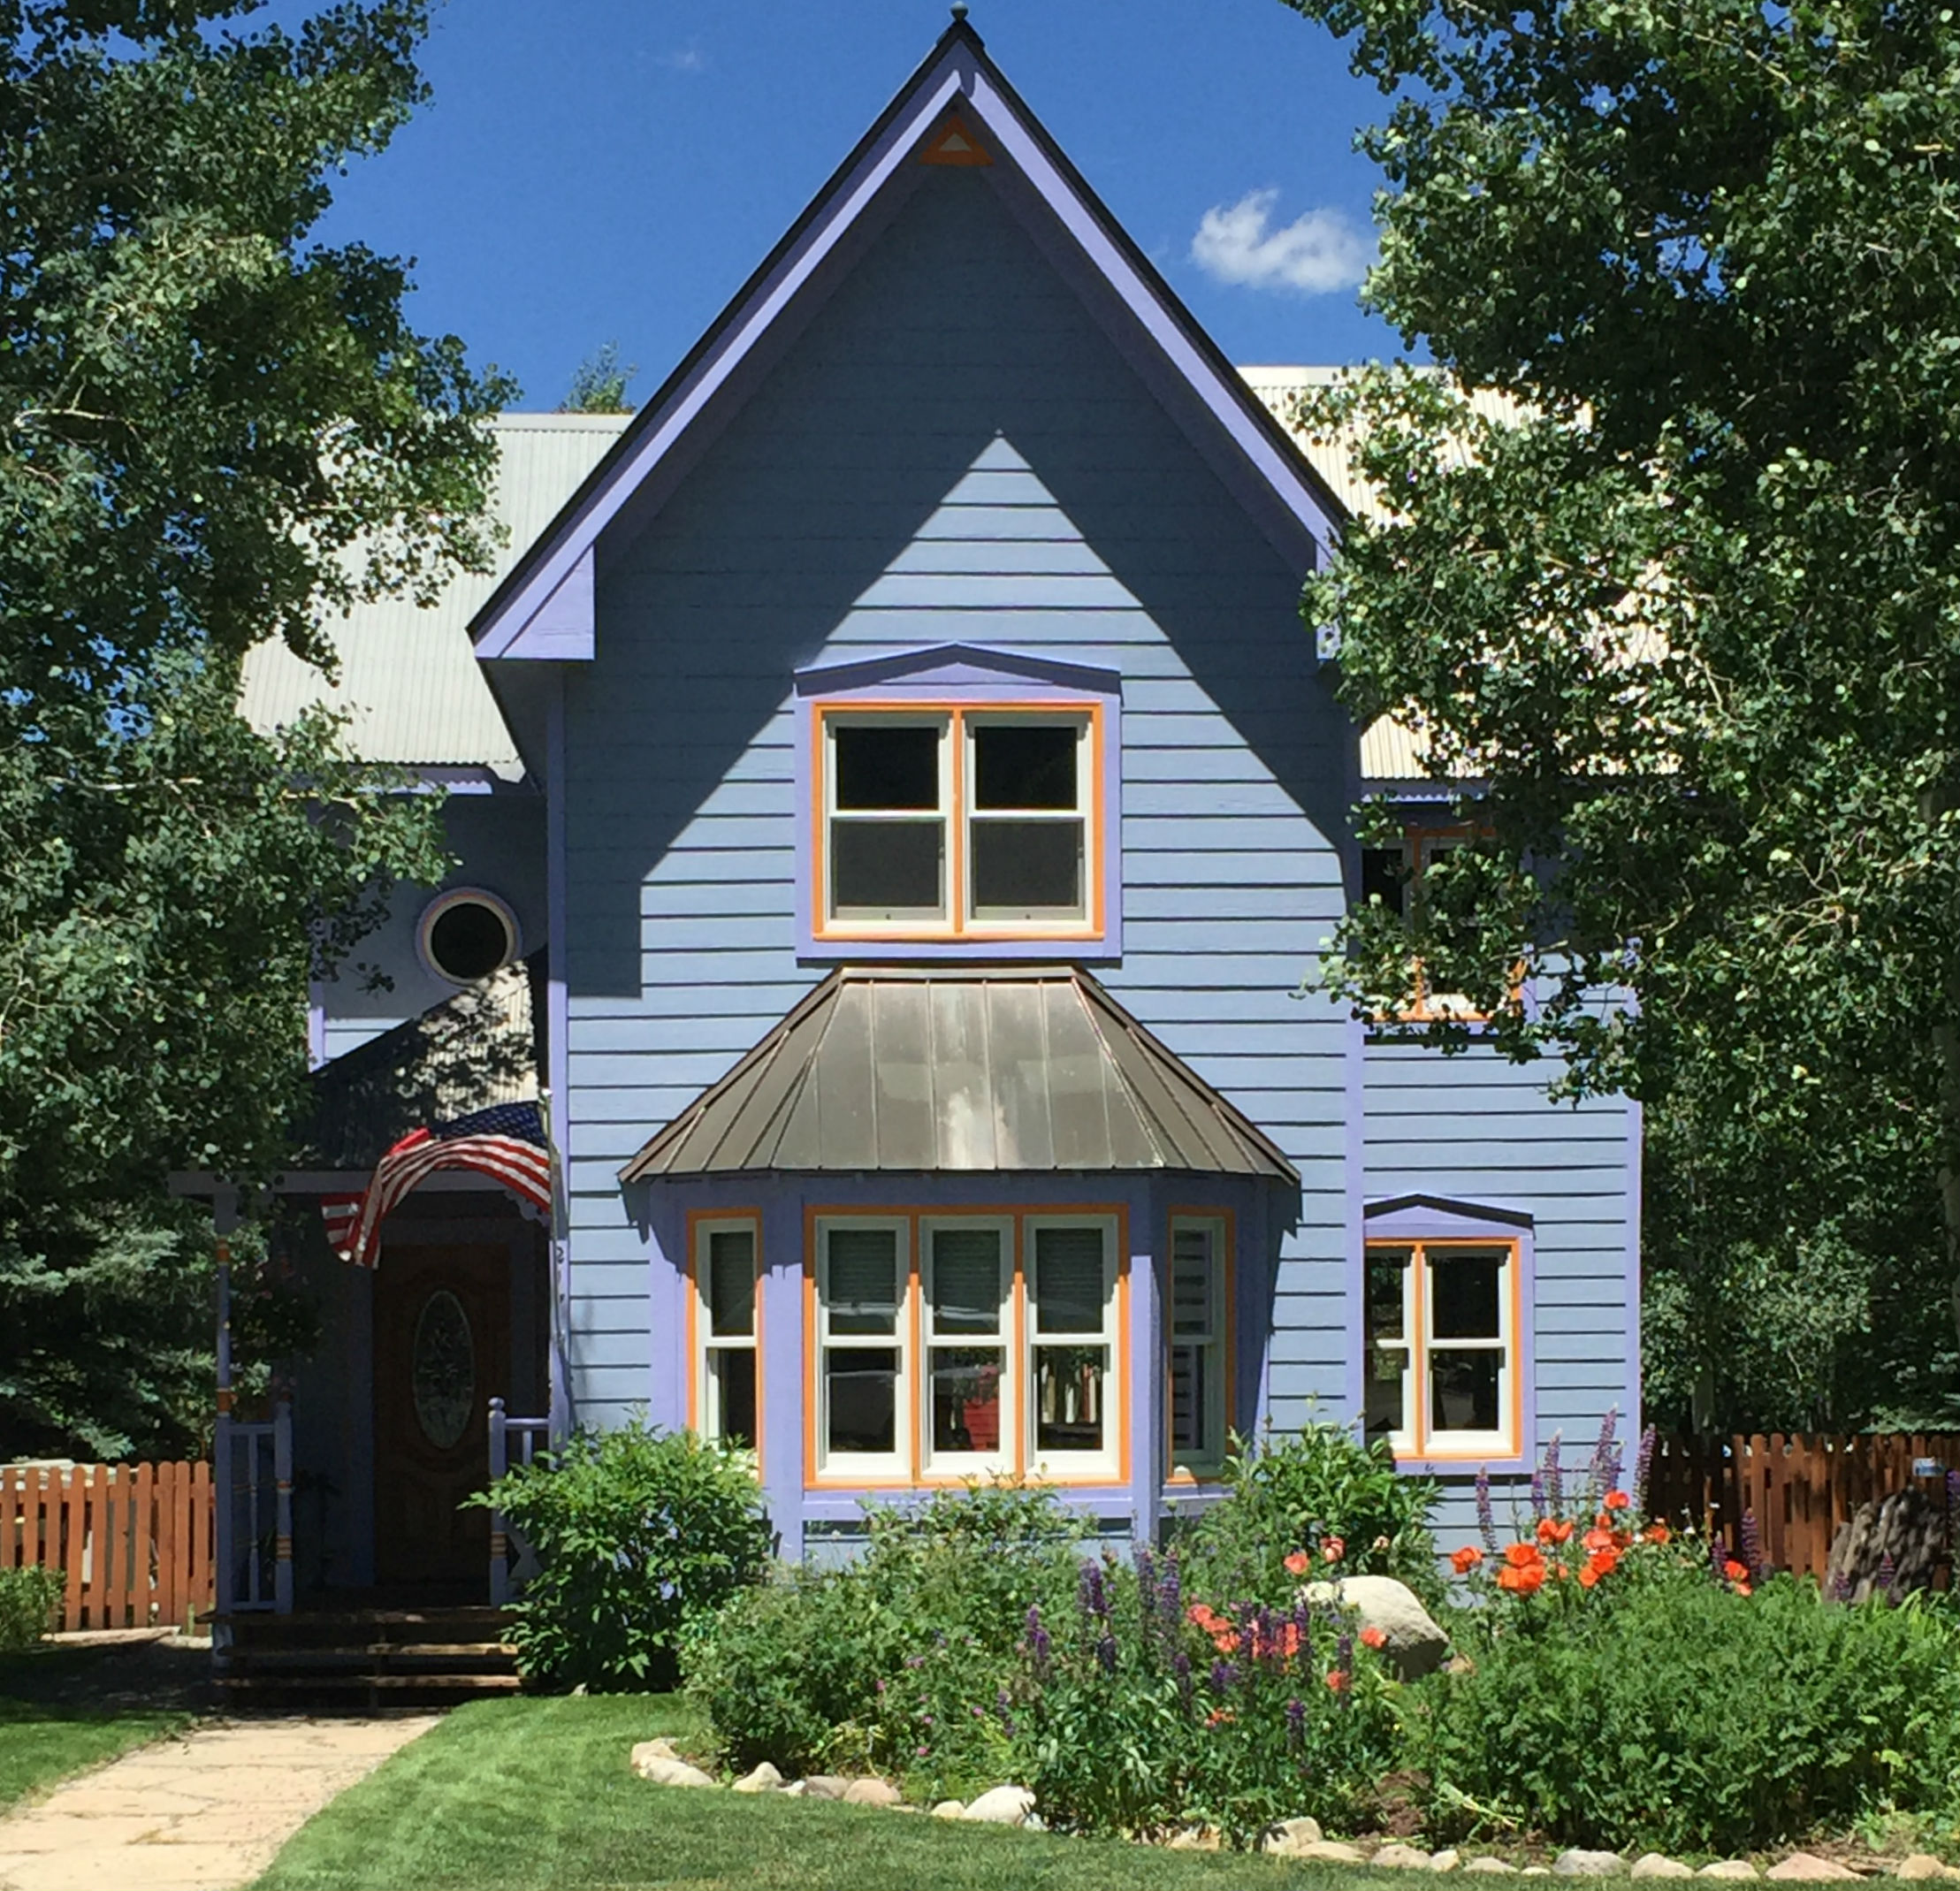 Colorful House the colorful houses of crested butte | crested butte real estate